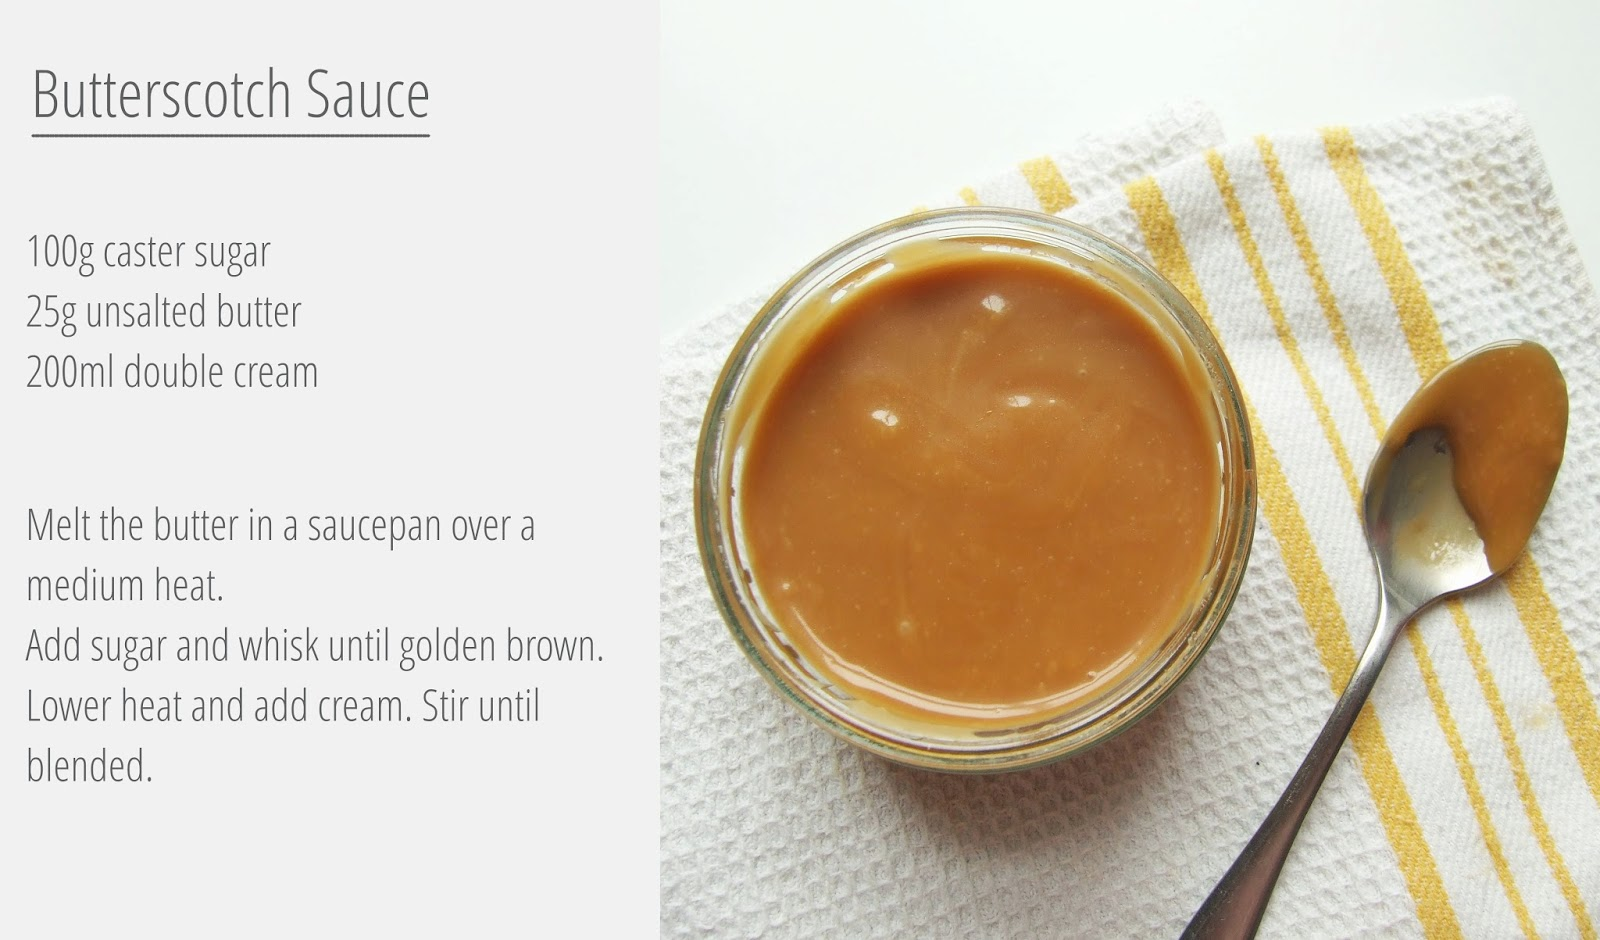 Butterscotch Sauce - Gathering Beauty